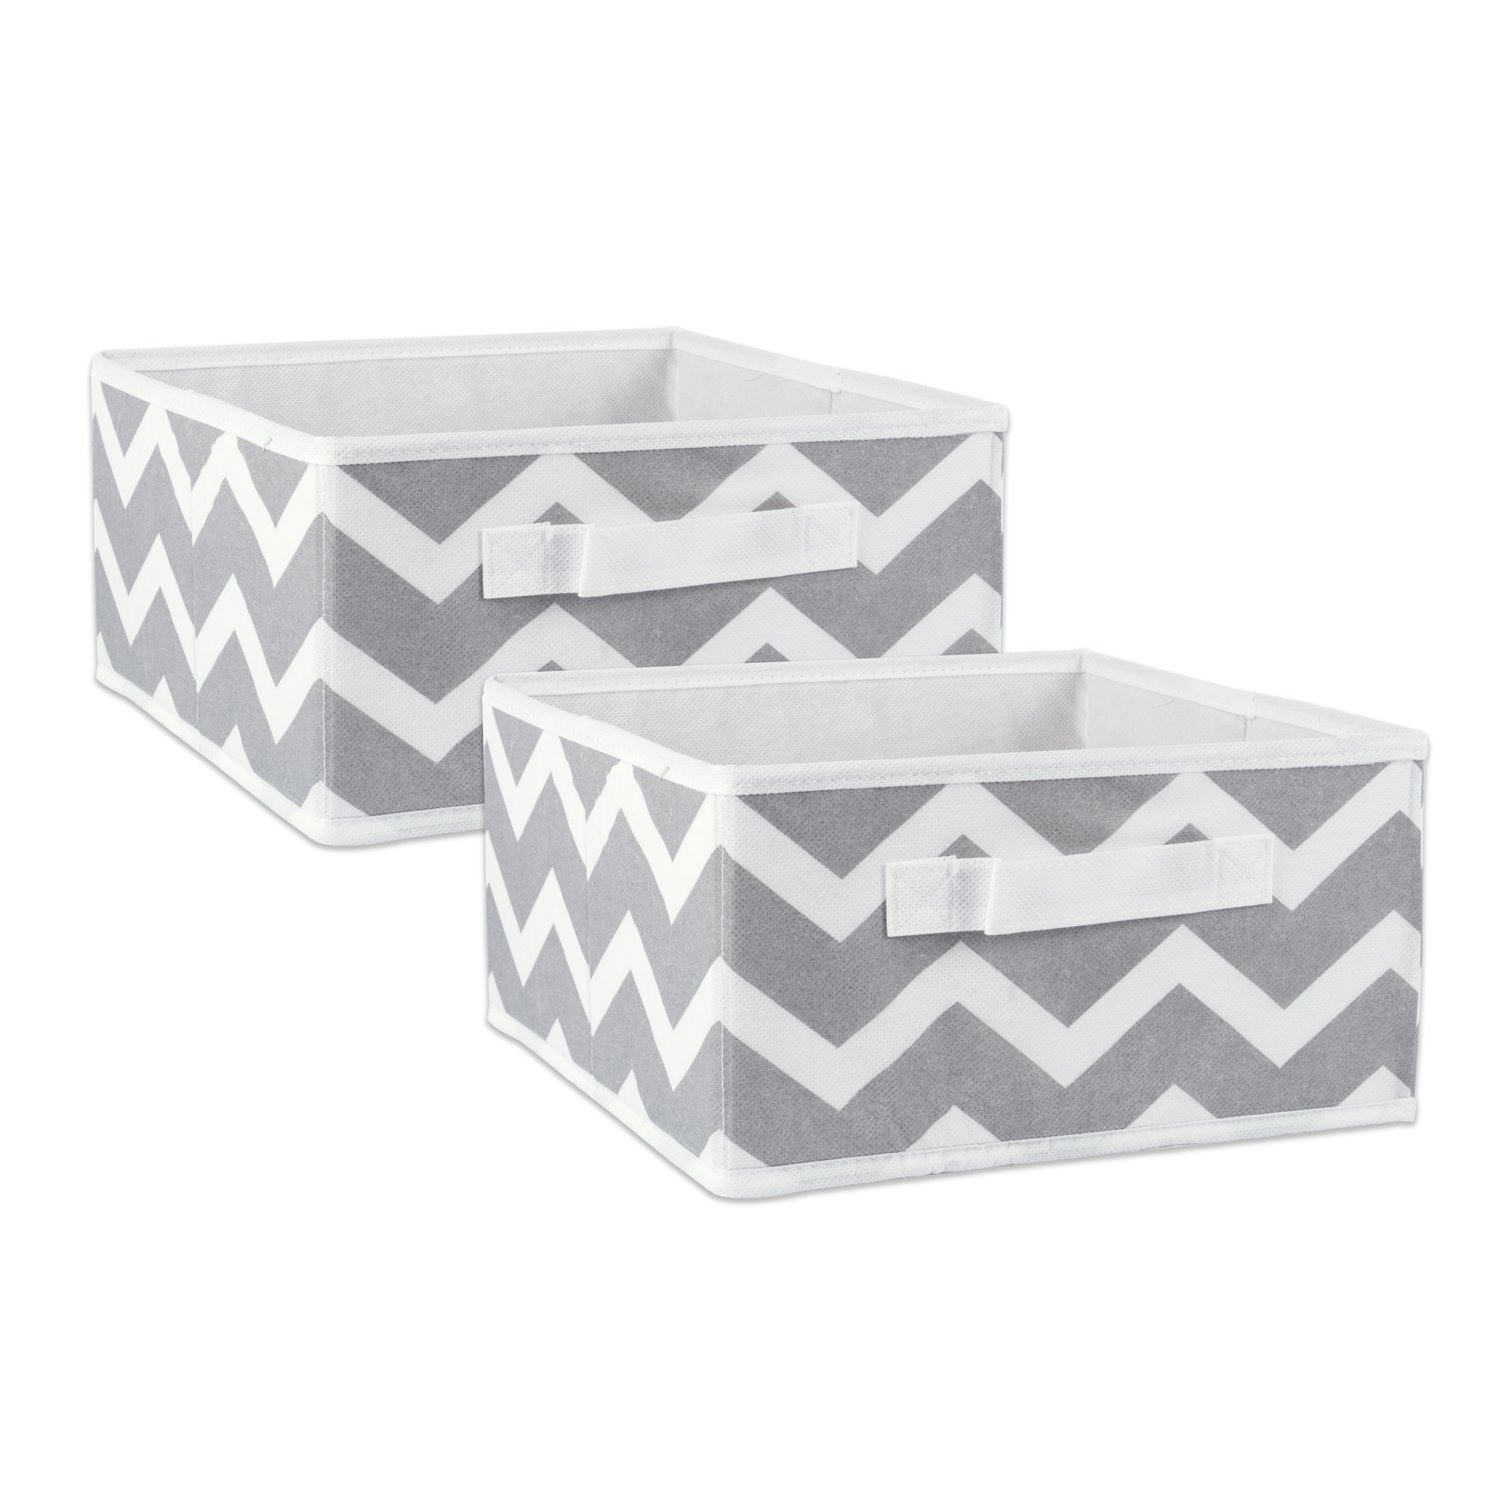 DII Fabric Storage Bins for Nursery, Offices, & Home Organization, Containers Are Made To Fit Standard Cube Organizers (11x5.5x5.5) Chevron Aqua - Set of 2 CAMZ36552